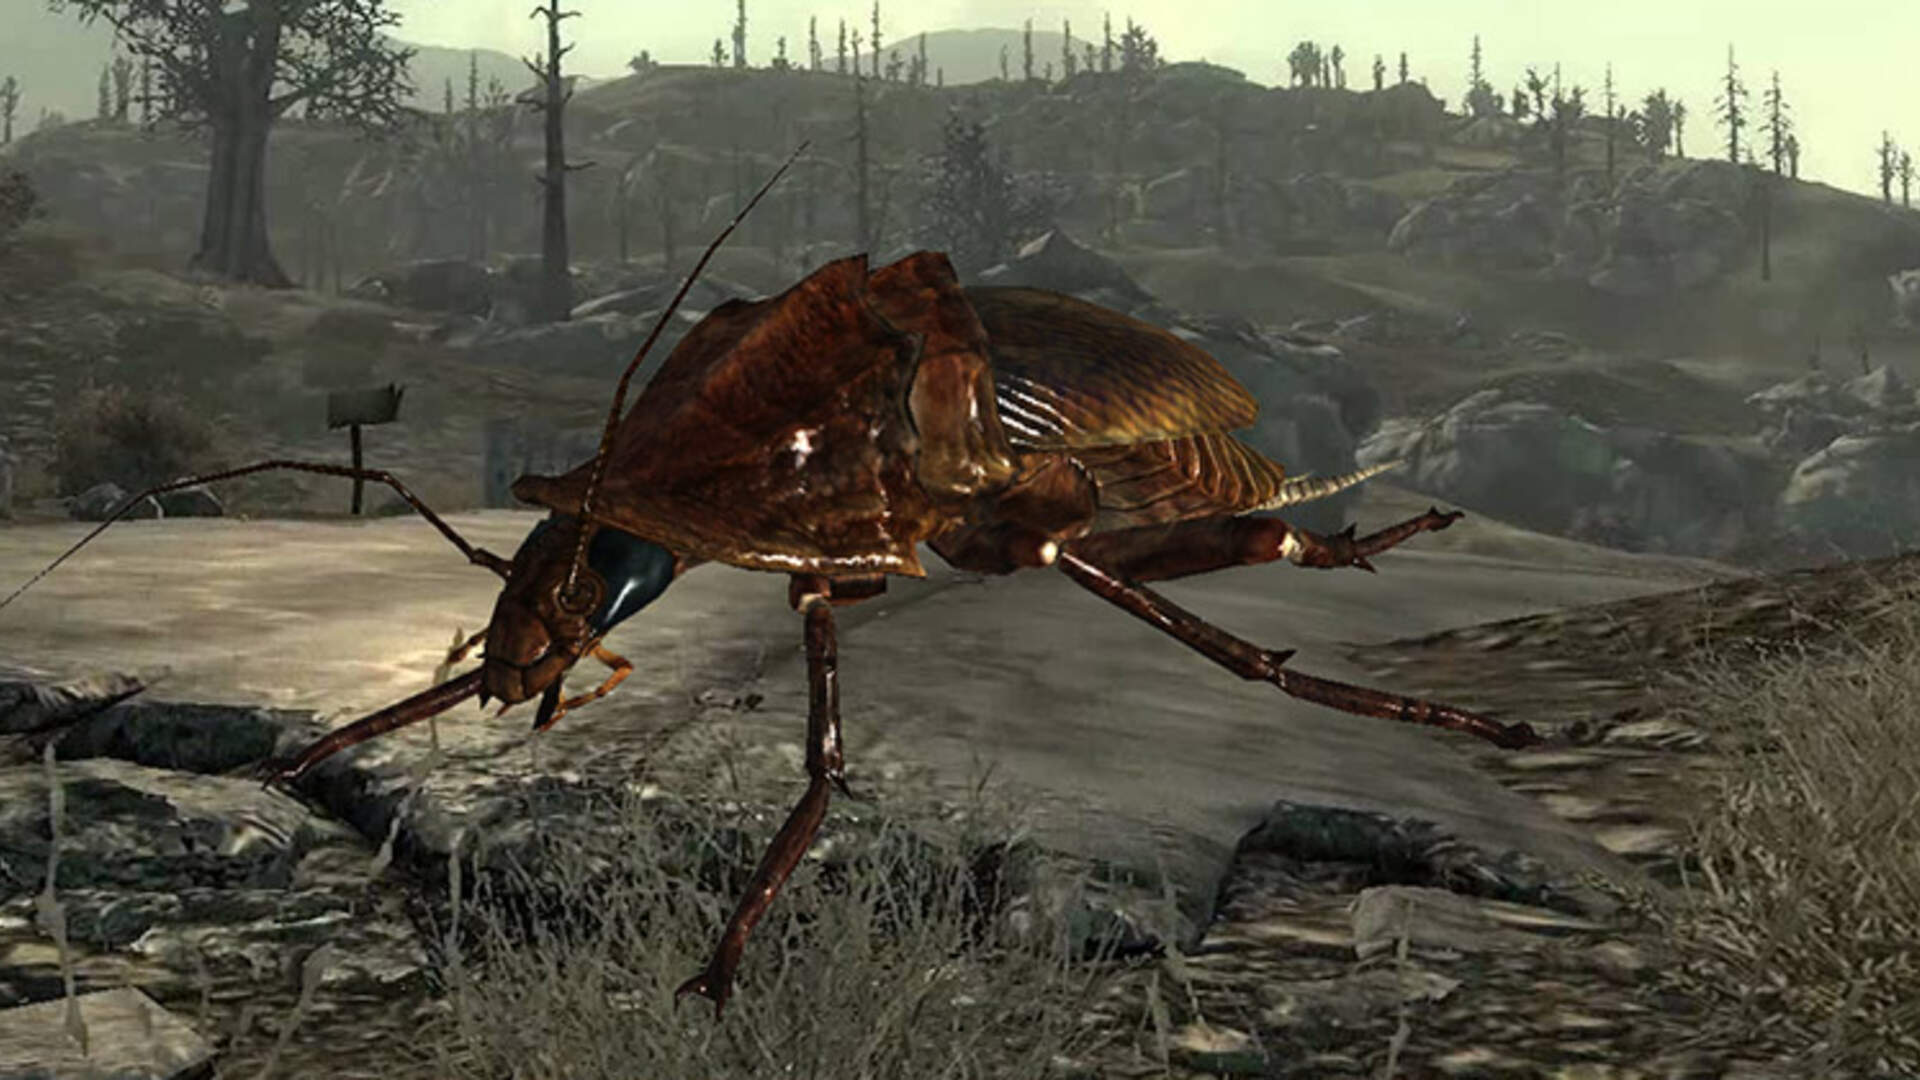 So, How Are Those Fallout 4 Bugs Treating You?